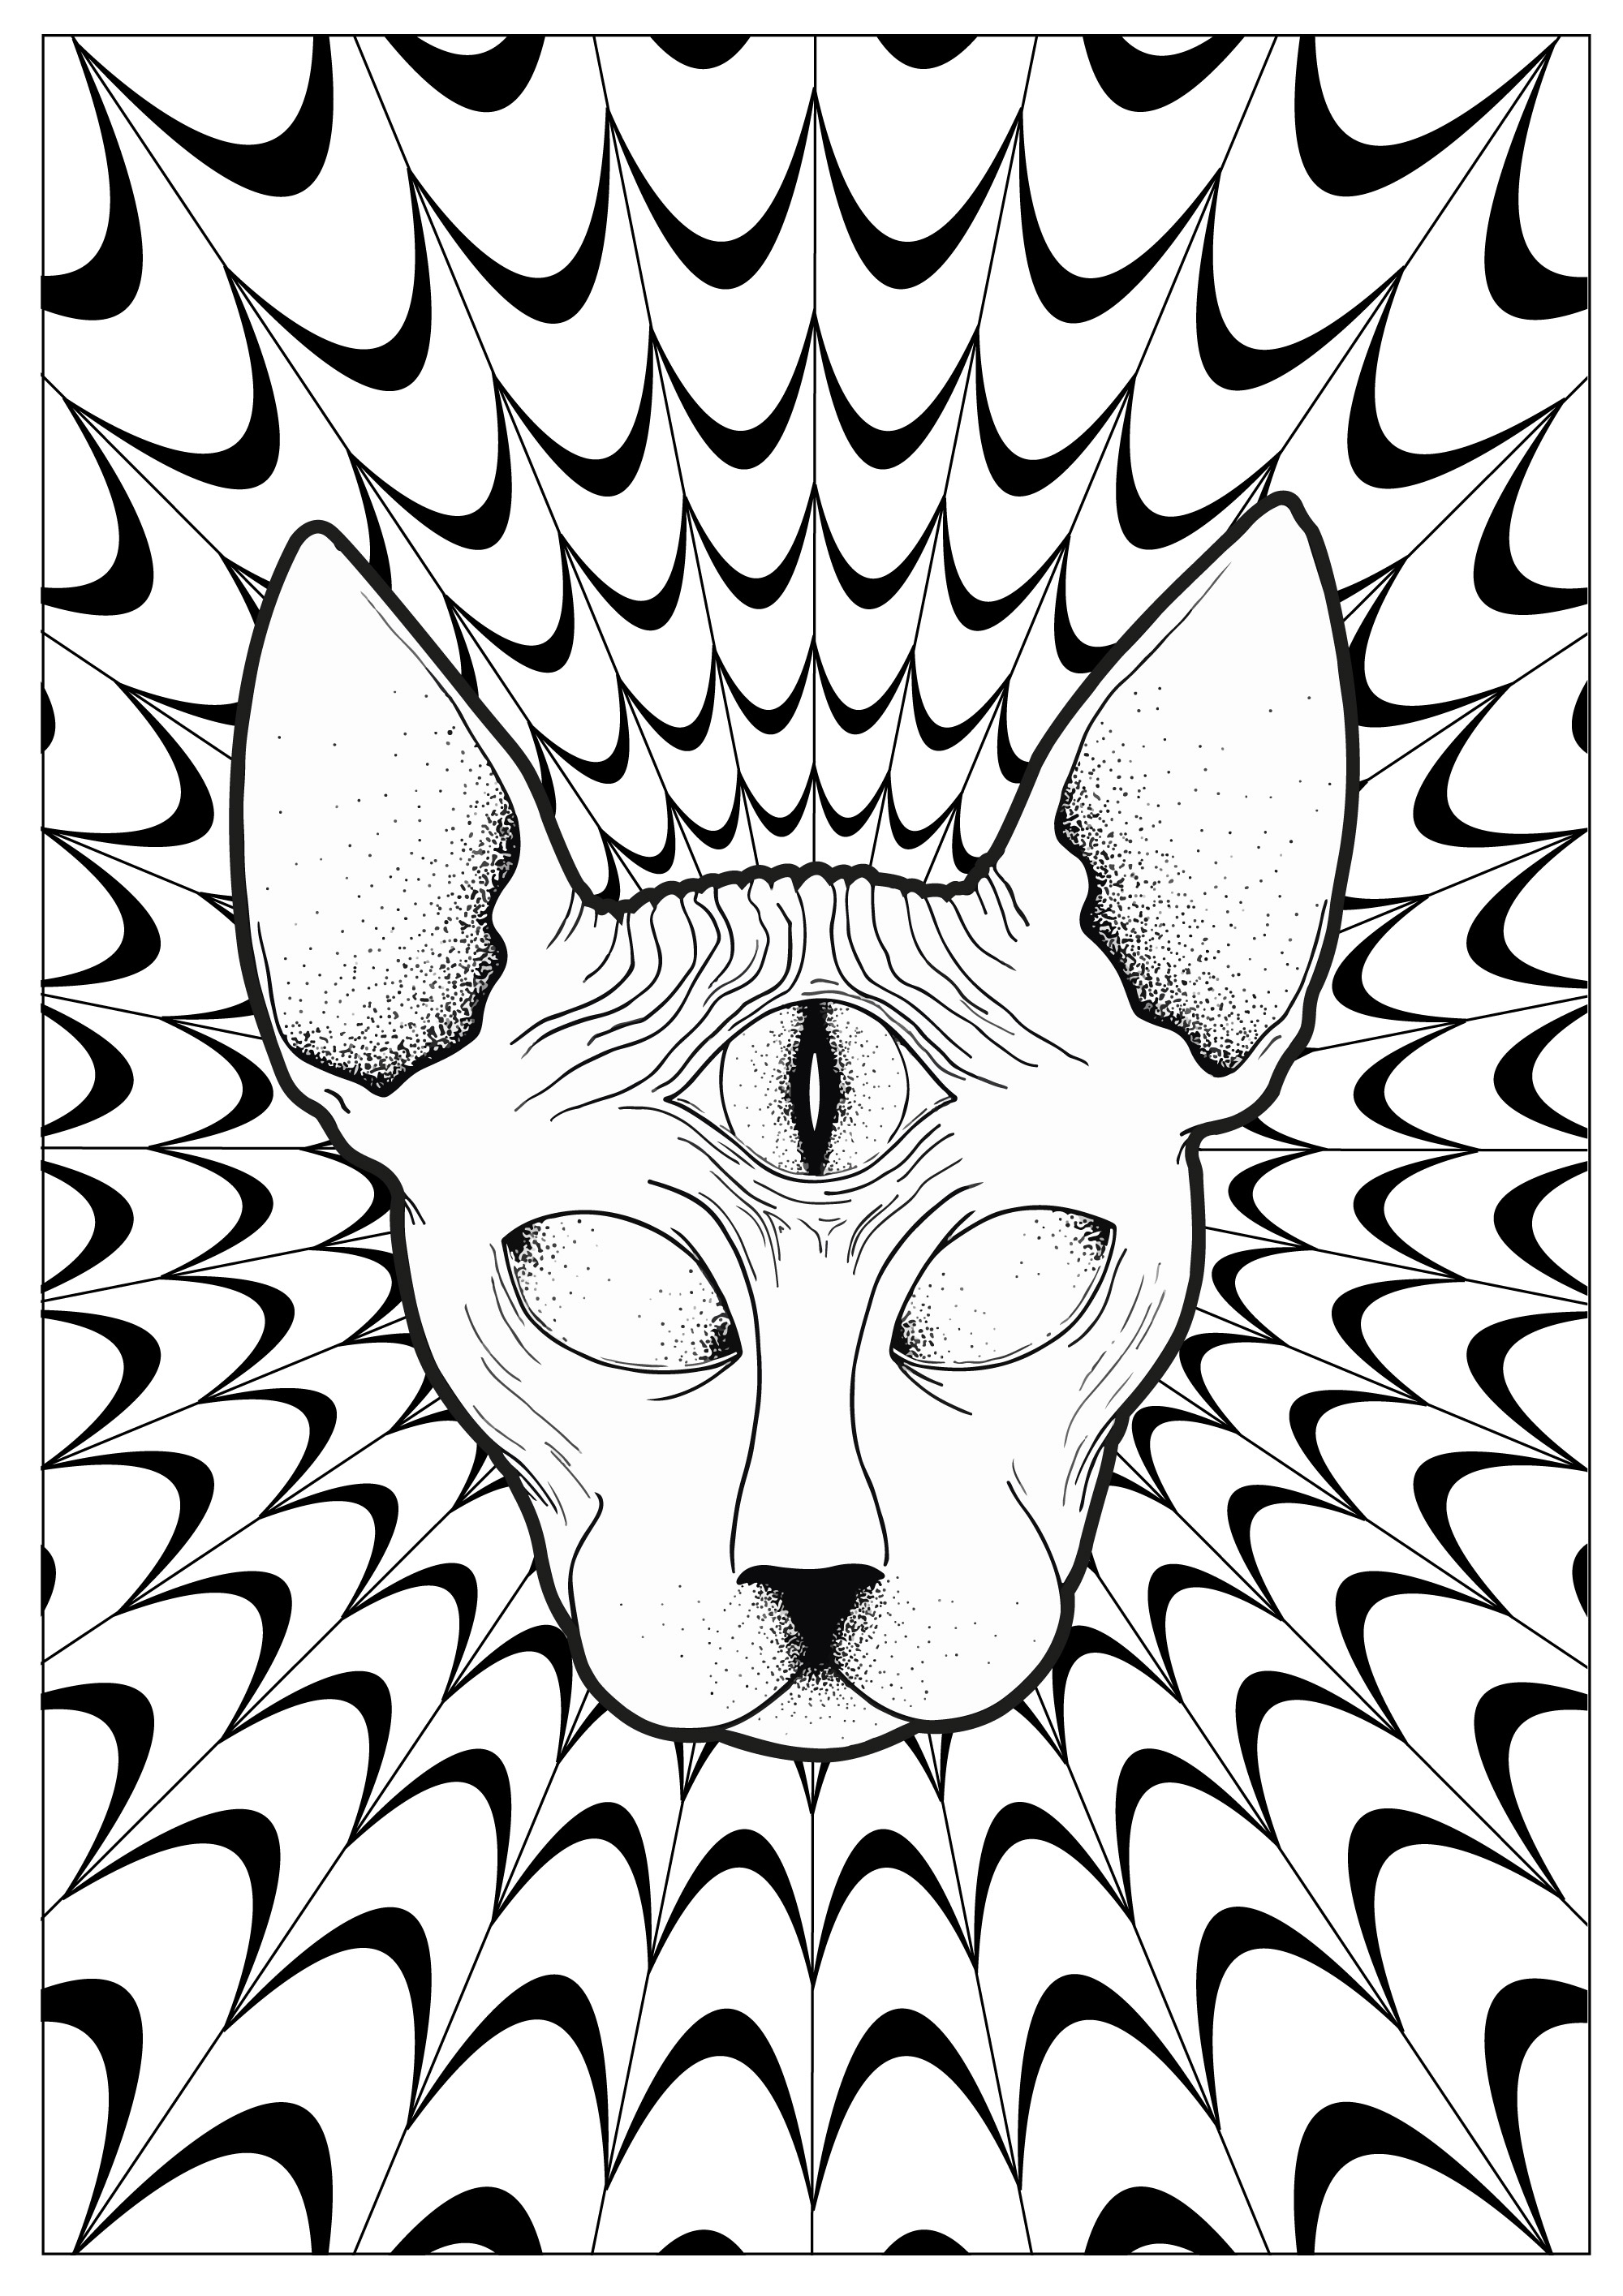 Coloring Pages : Trippy Coloring Pages Cat Psychedelic Sphynx - Free Printable Trippy Coloring Pages